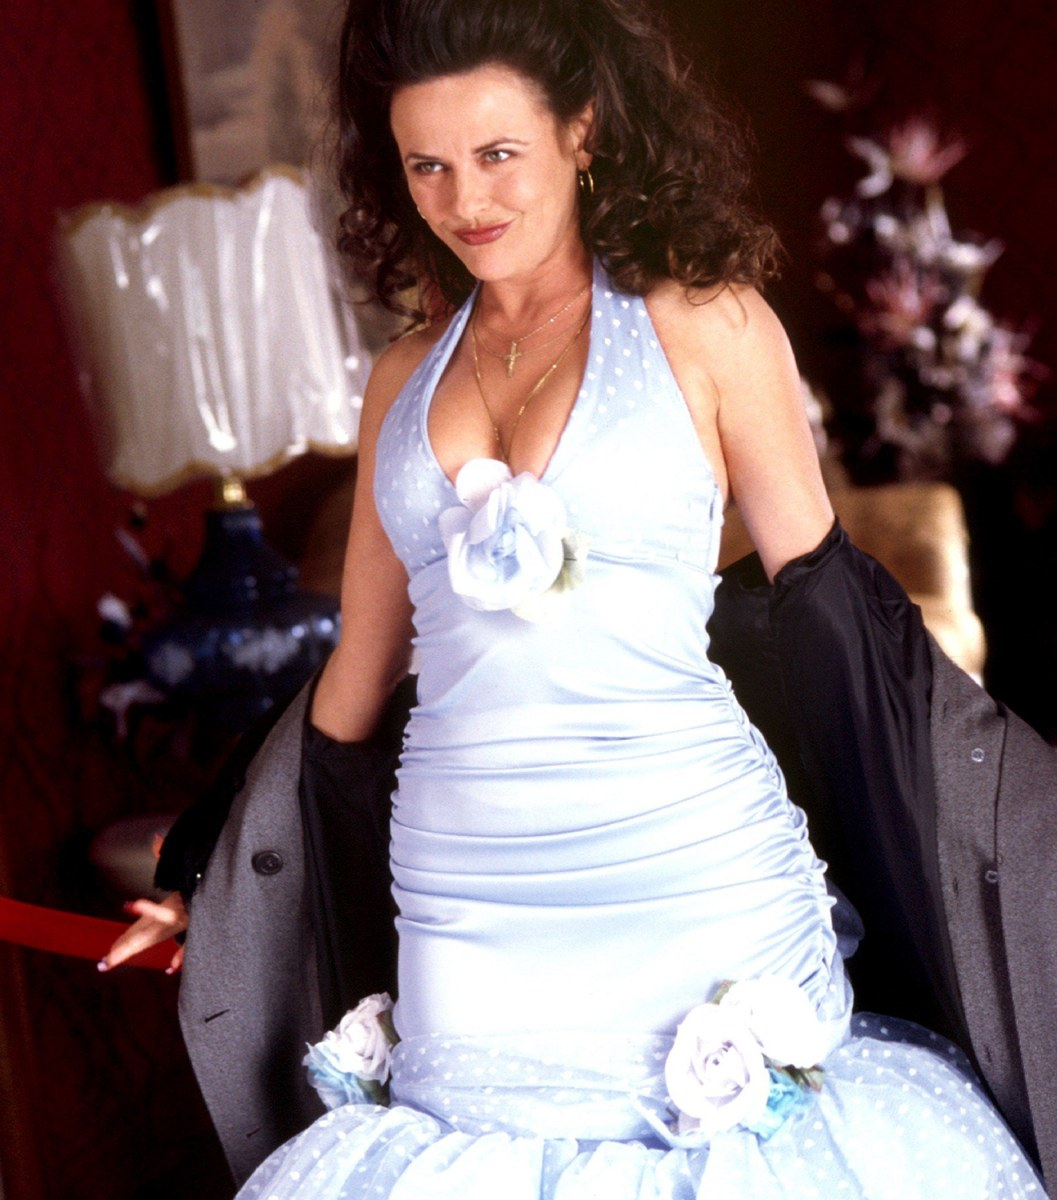 smart tips to survive wedding season com image my big fat greek wedding gia carides 2002 c